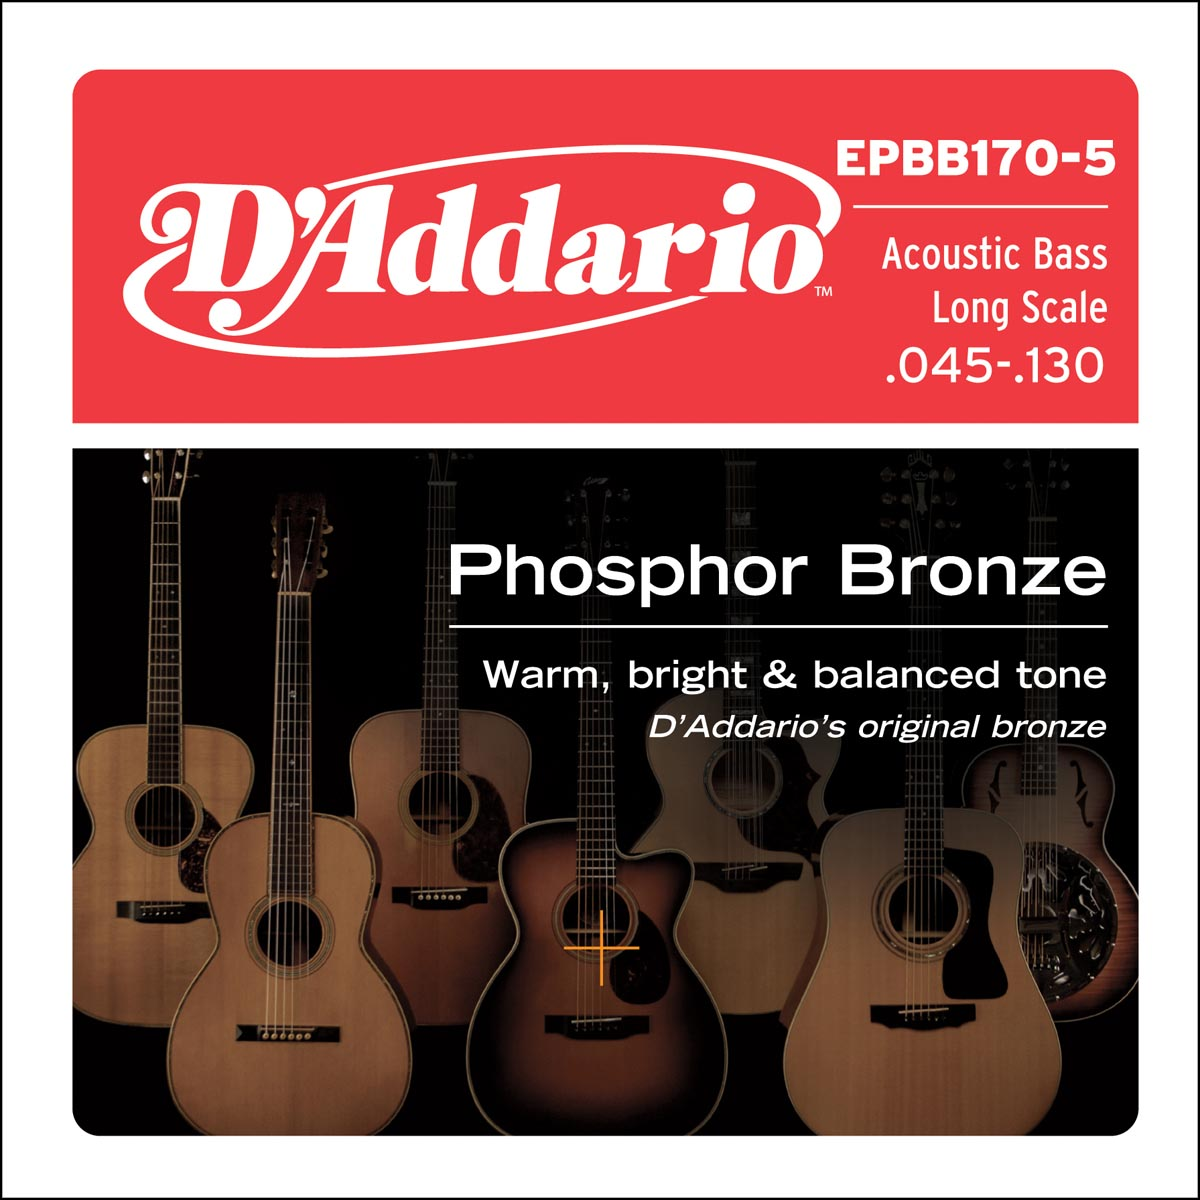 DADDARIO EPBB170-5 PHOSPHOR BRONZE 5-STRING LONG SCALE, [45-130]